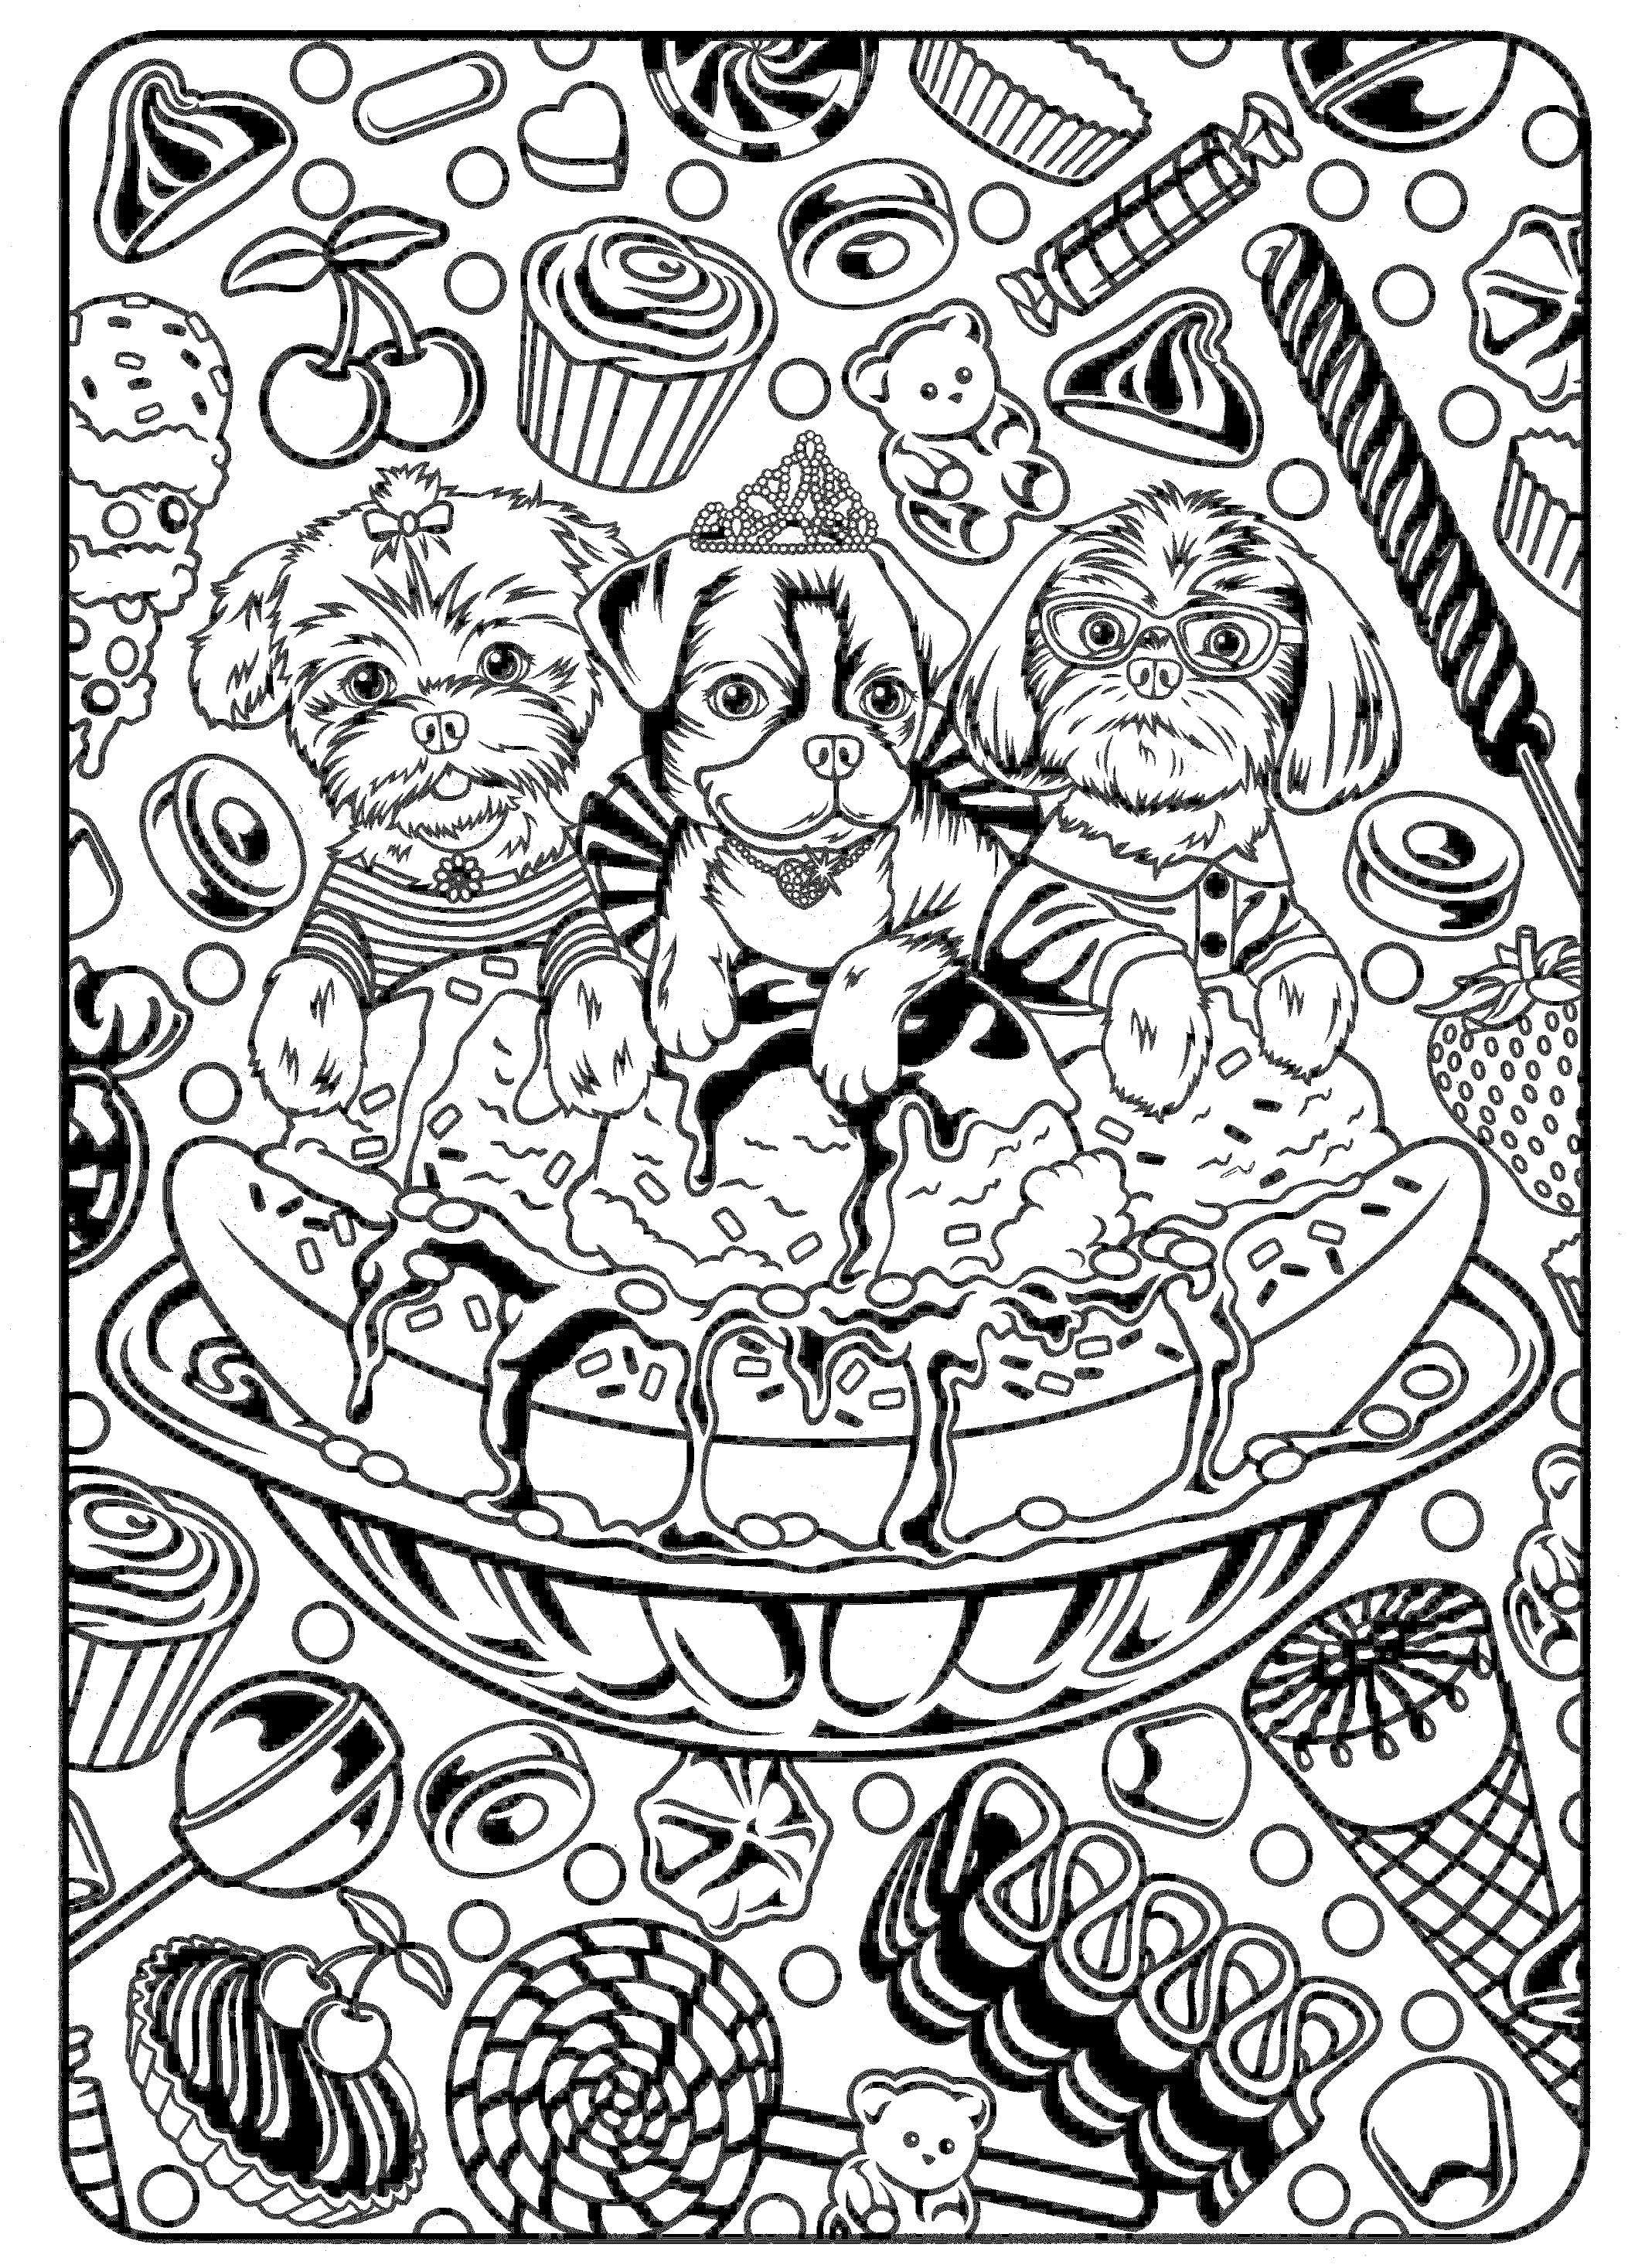 Printable Mosaic Coloring Pages  Download 18j - Save it to your computer